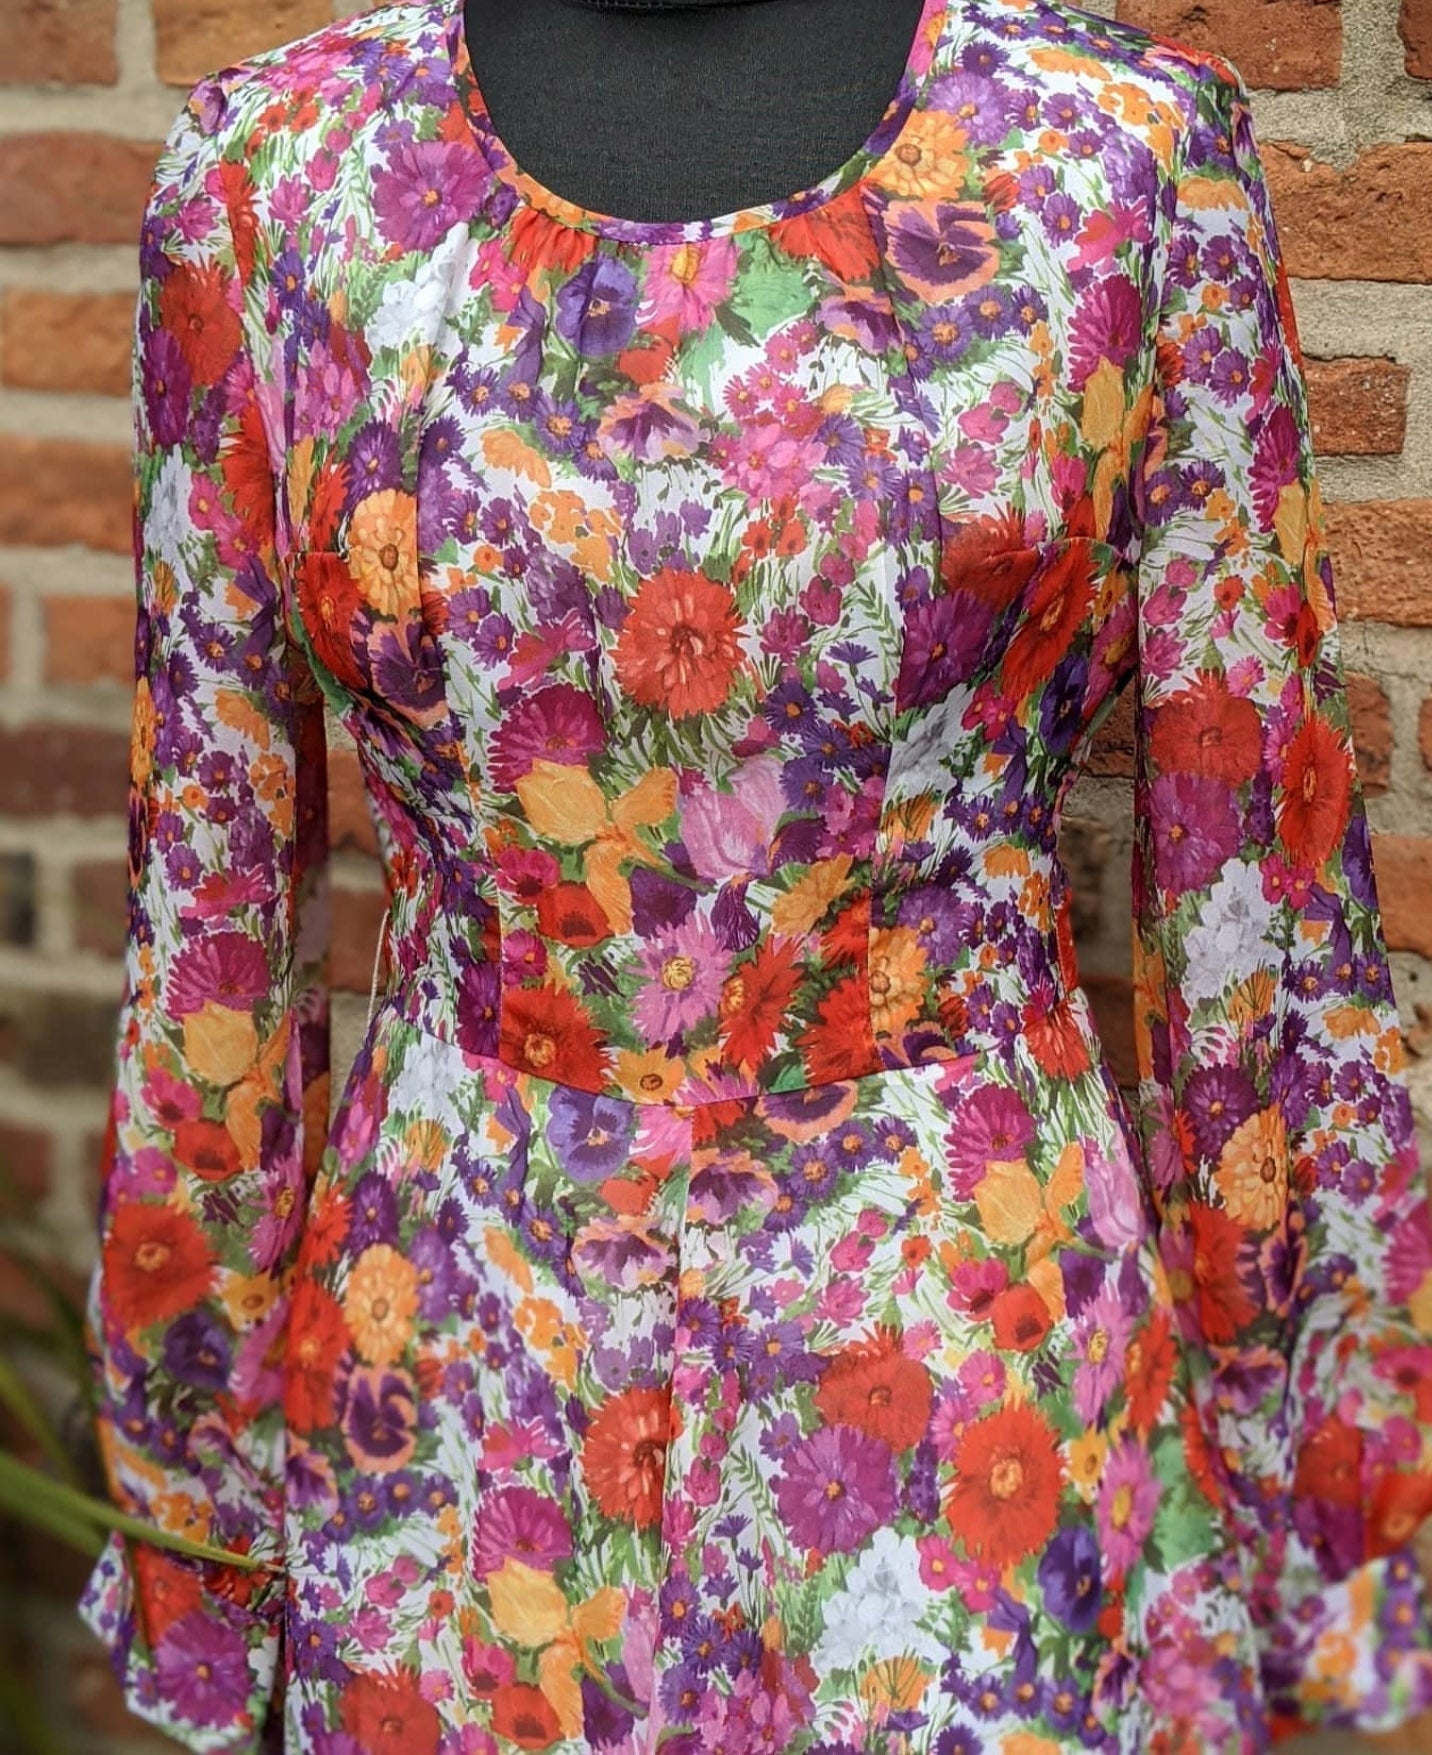 Vintage garden print dress, approx size 10